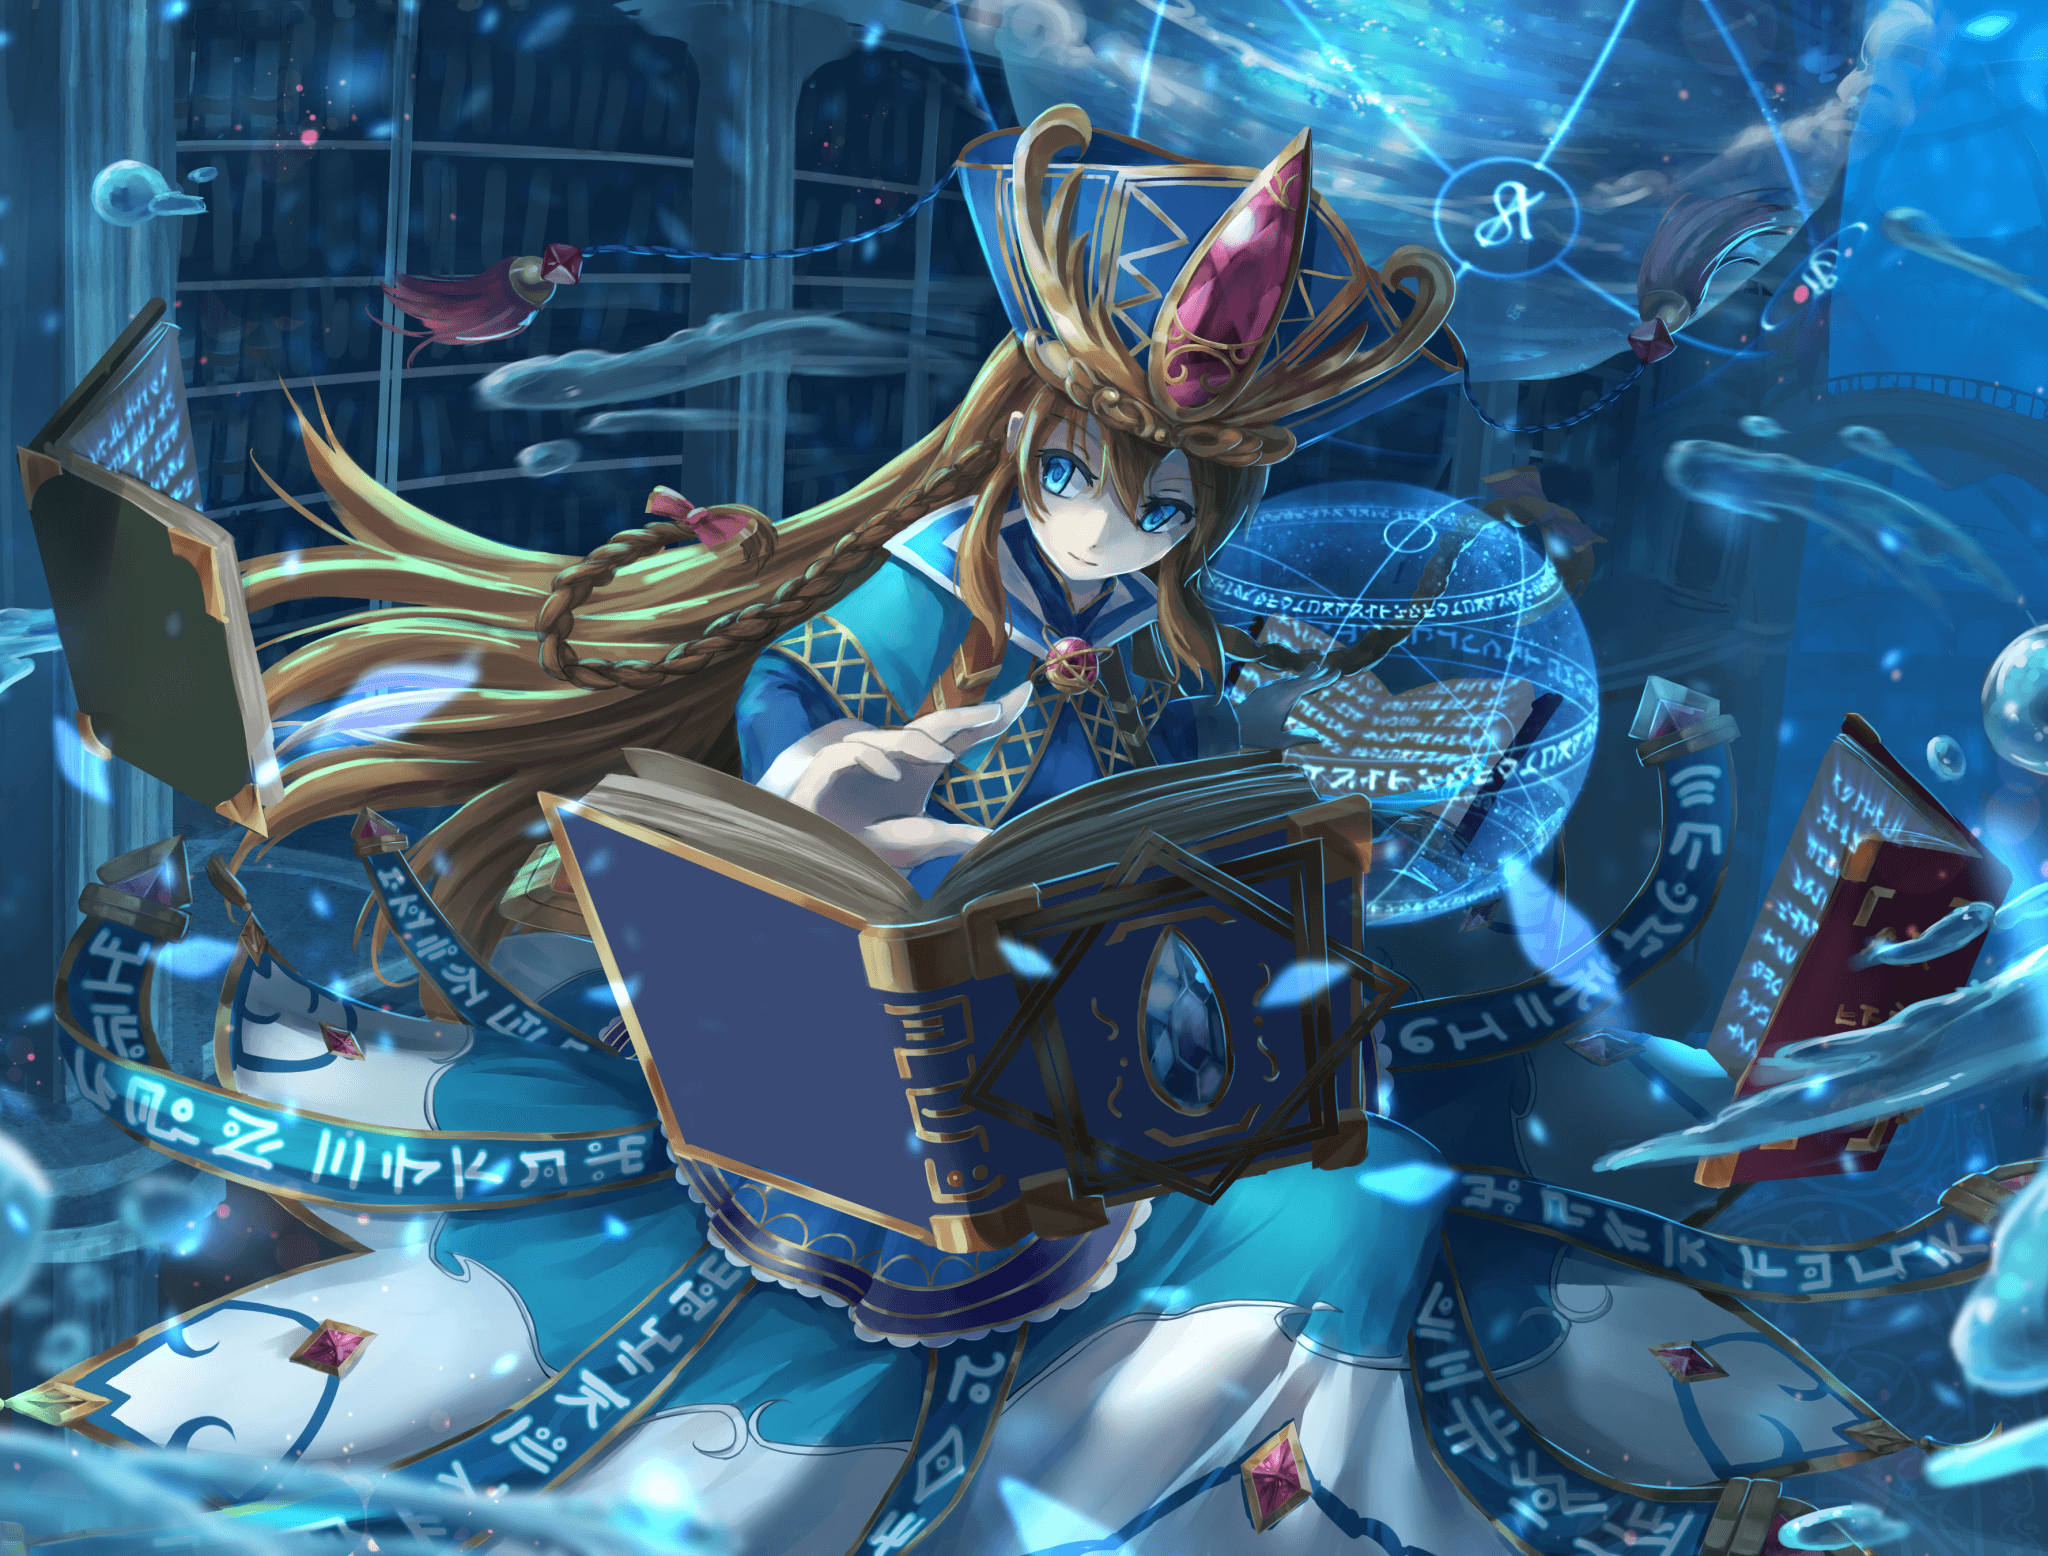 Download 2048x1556 Brave Frontier, Magic, Library, Water Drops